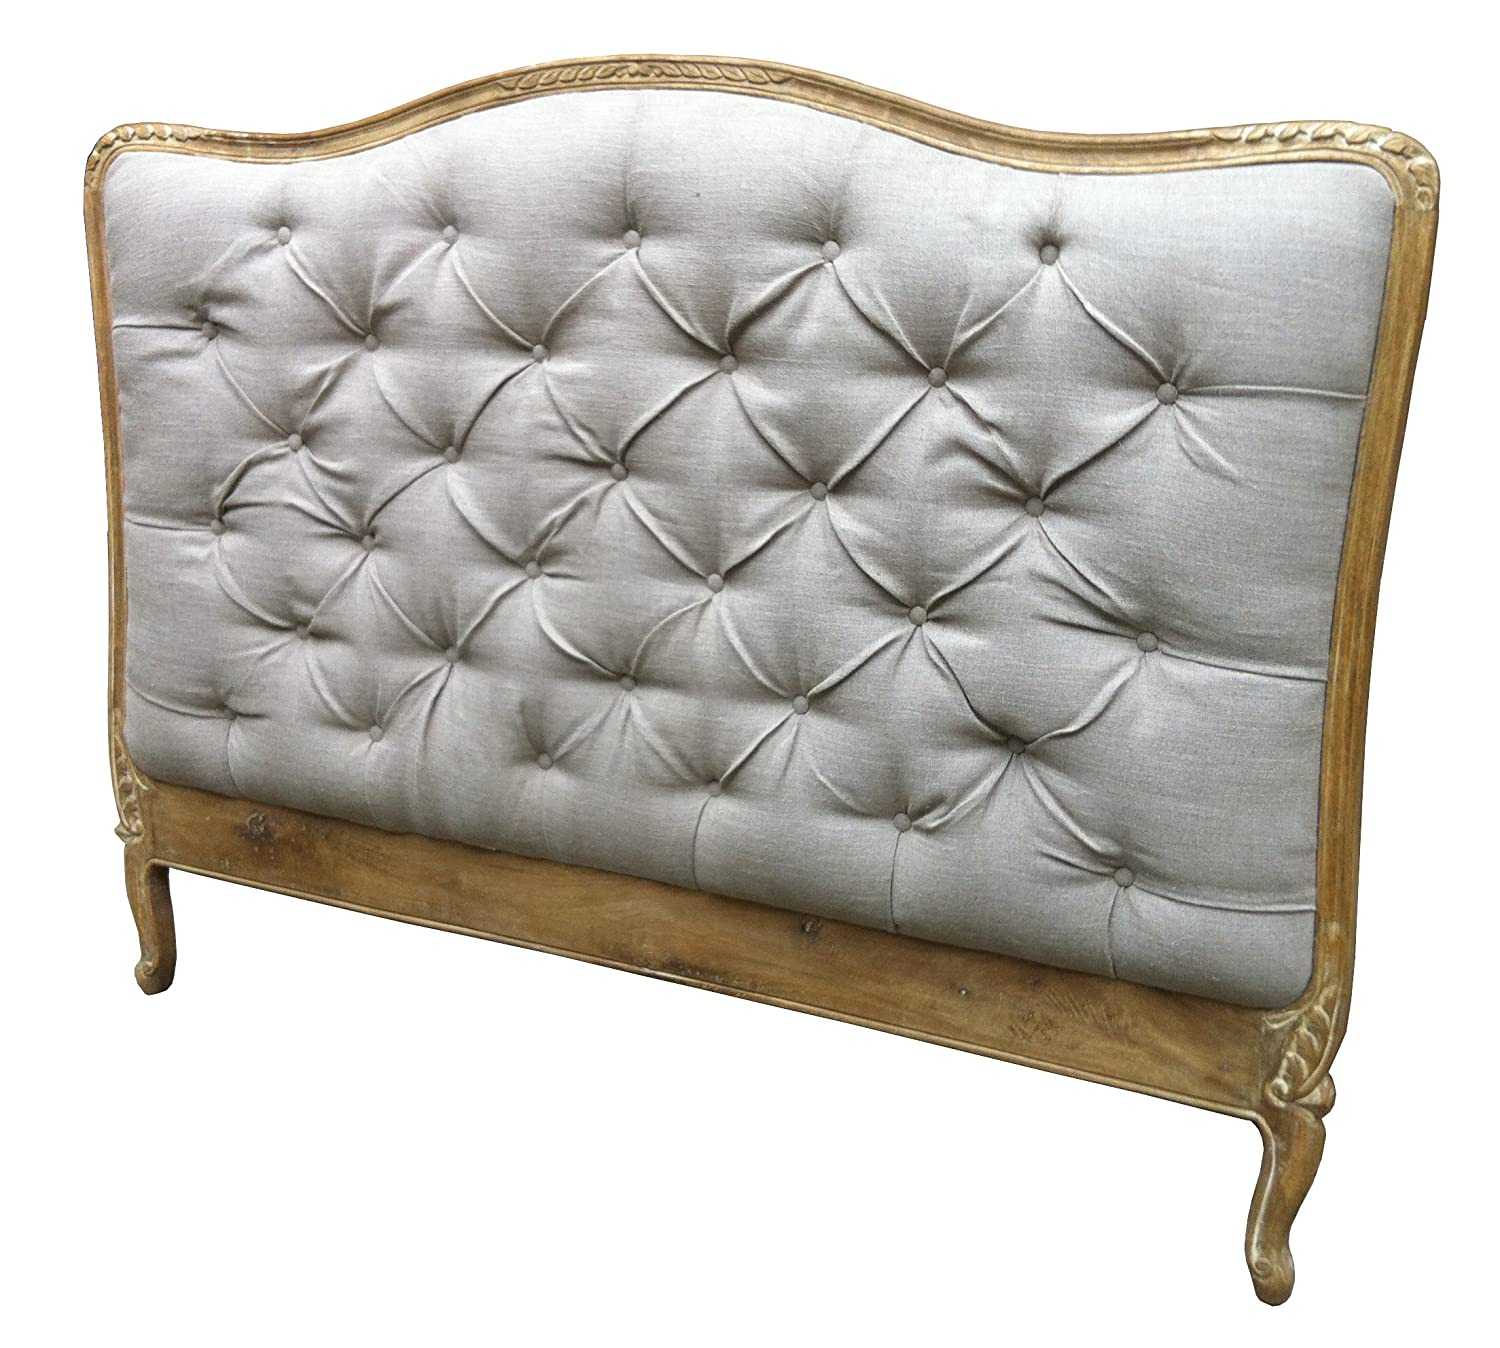 french style shabby chic upholstered headboard king size in retro touch finish upholstery in natural